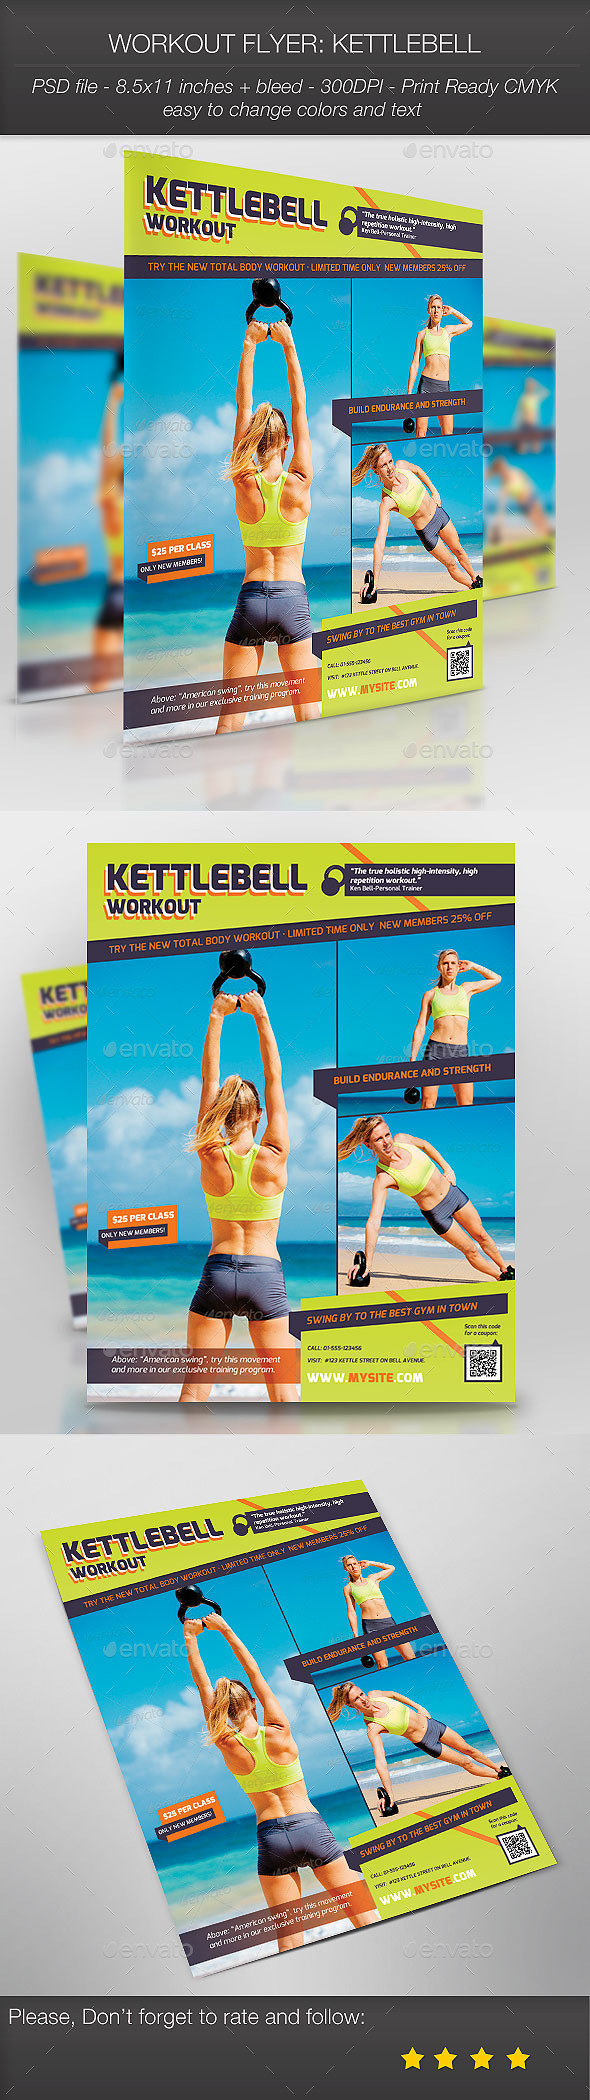 GraphicRiver Workout Flyer Kettlebell 9197240